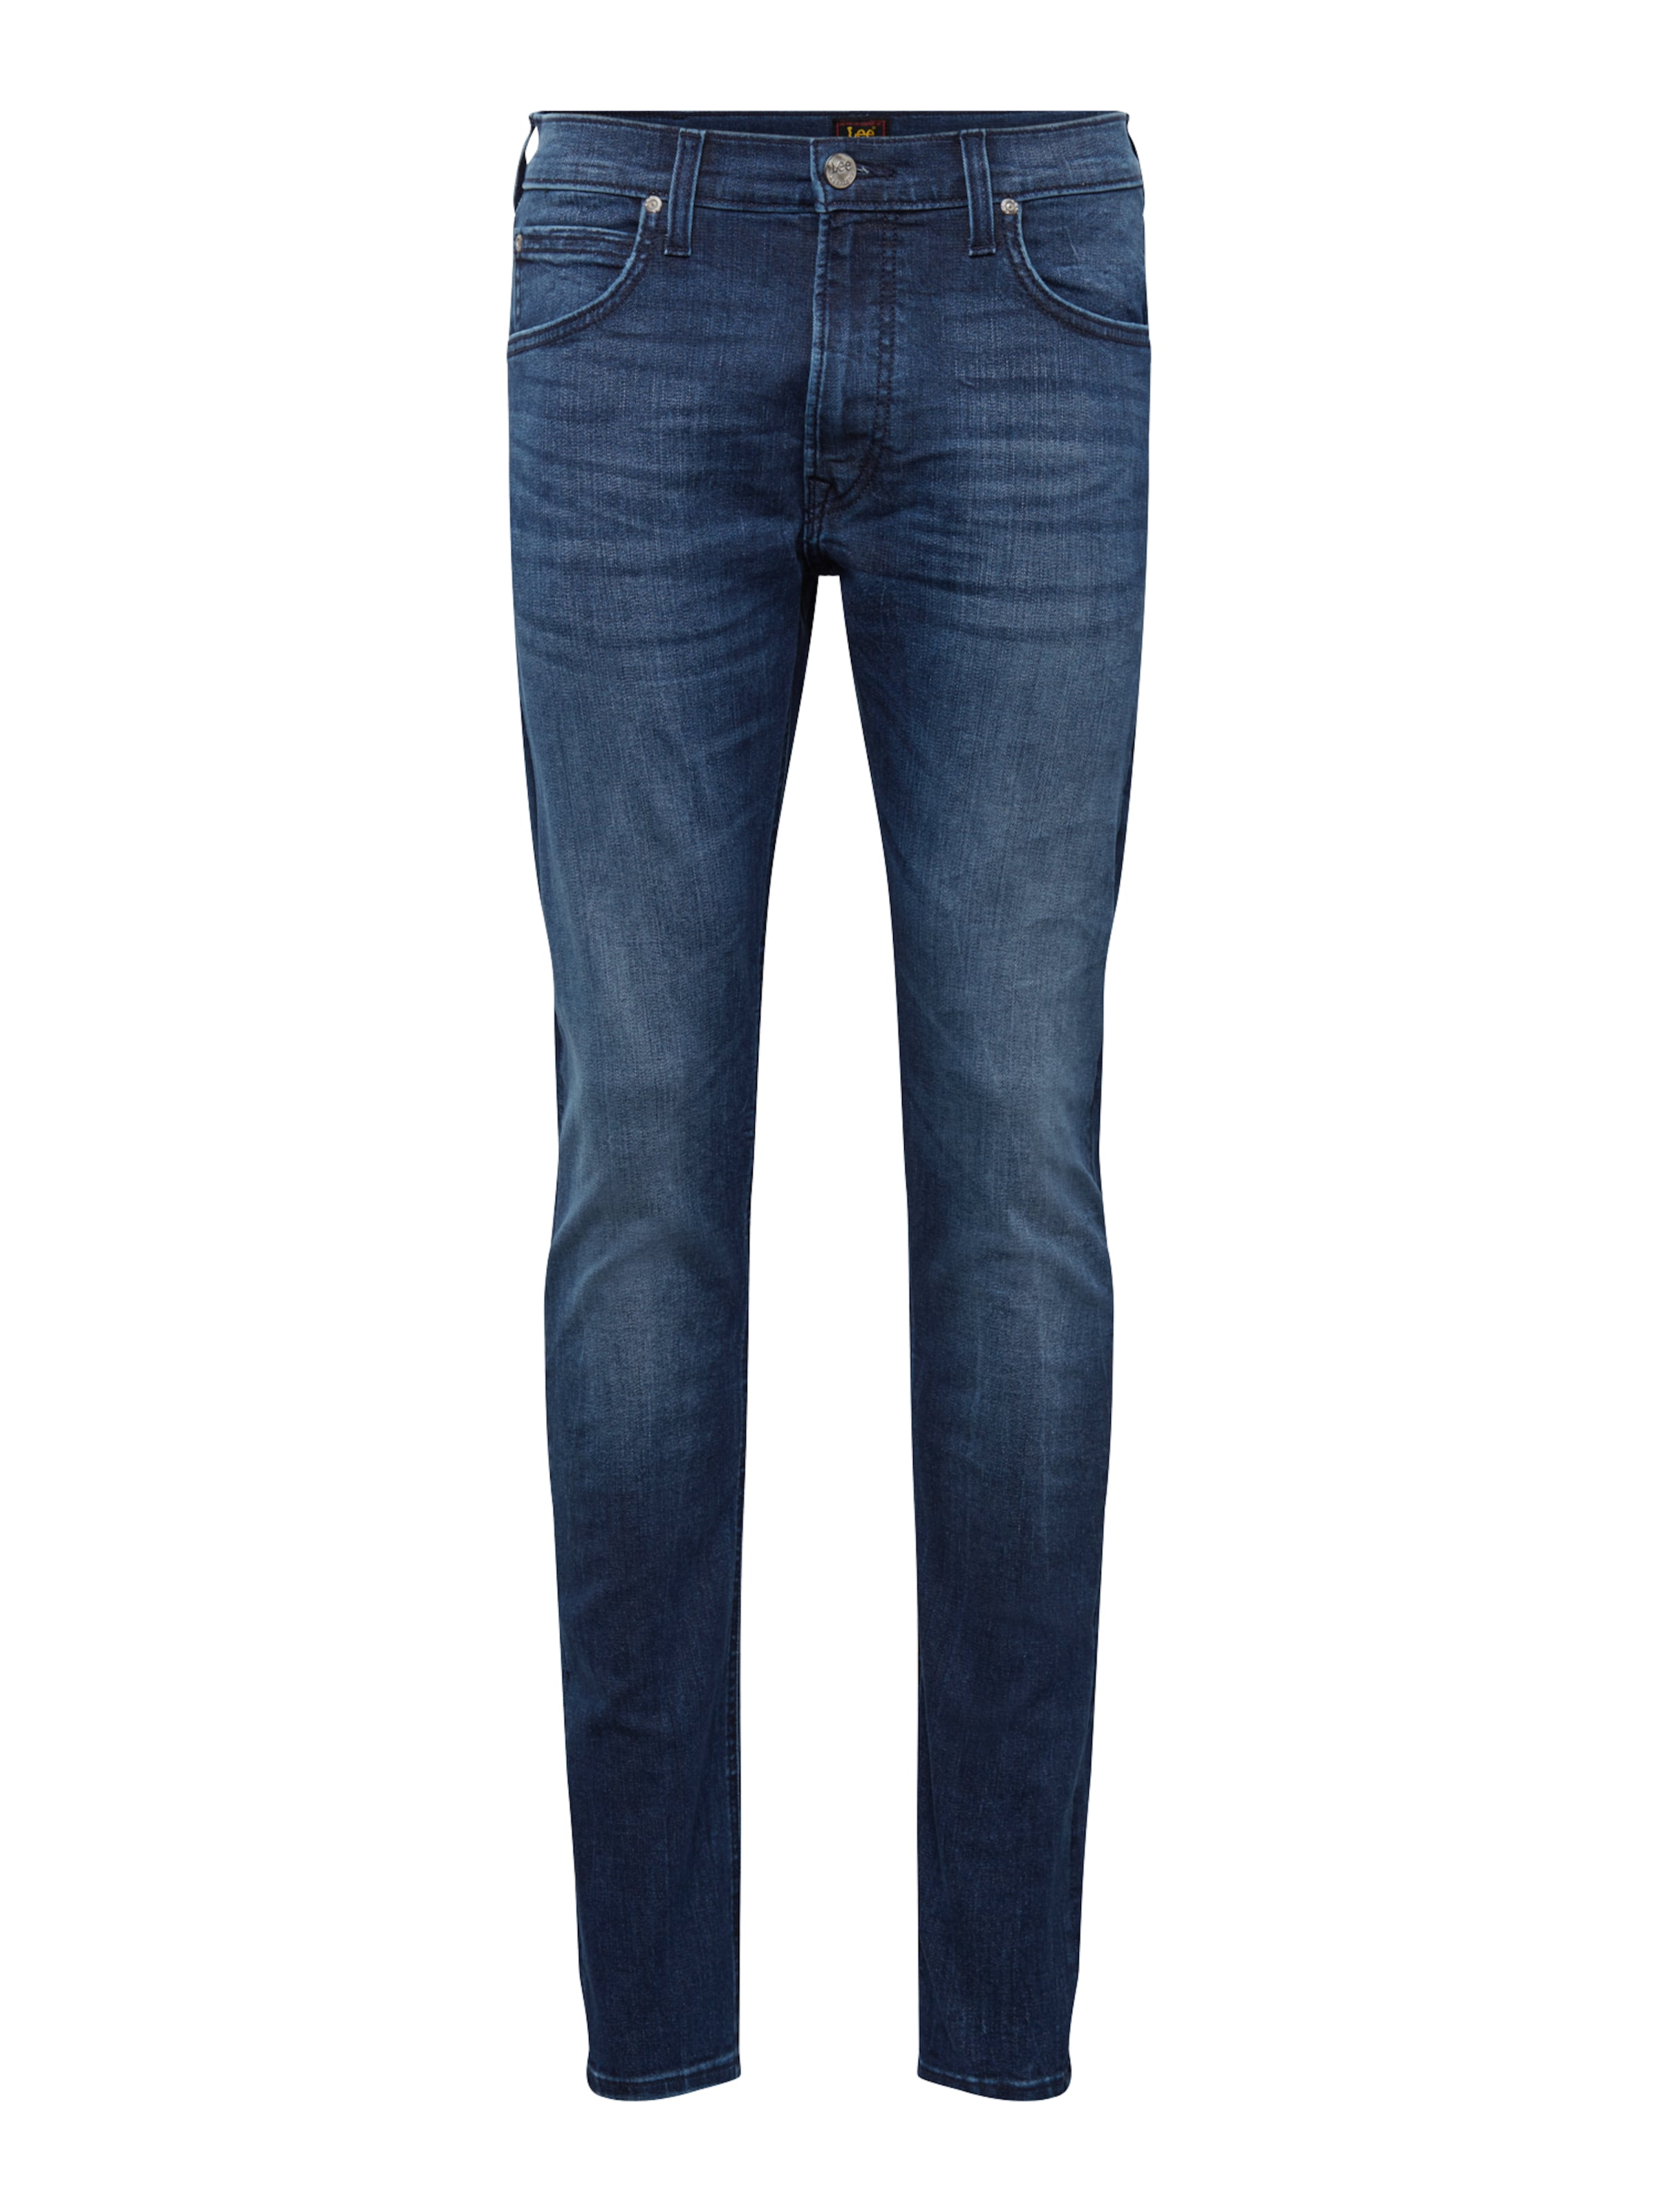 Denim Jean Bleu En Lee 'luke' 9WDHEY2I